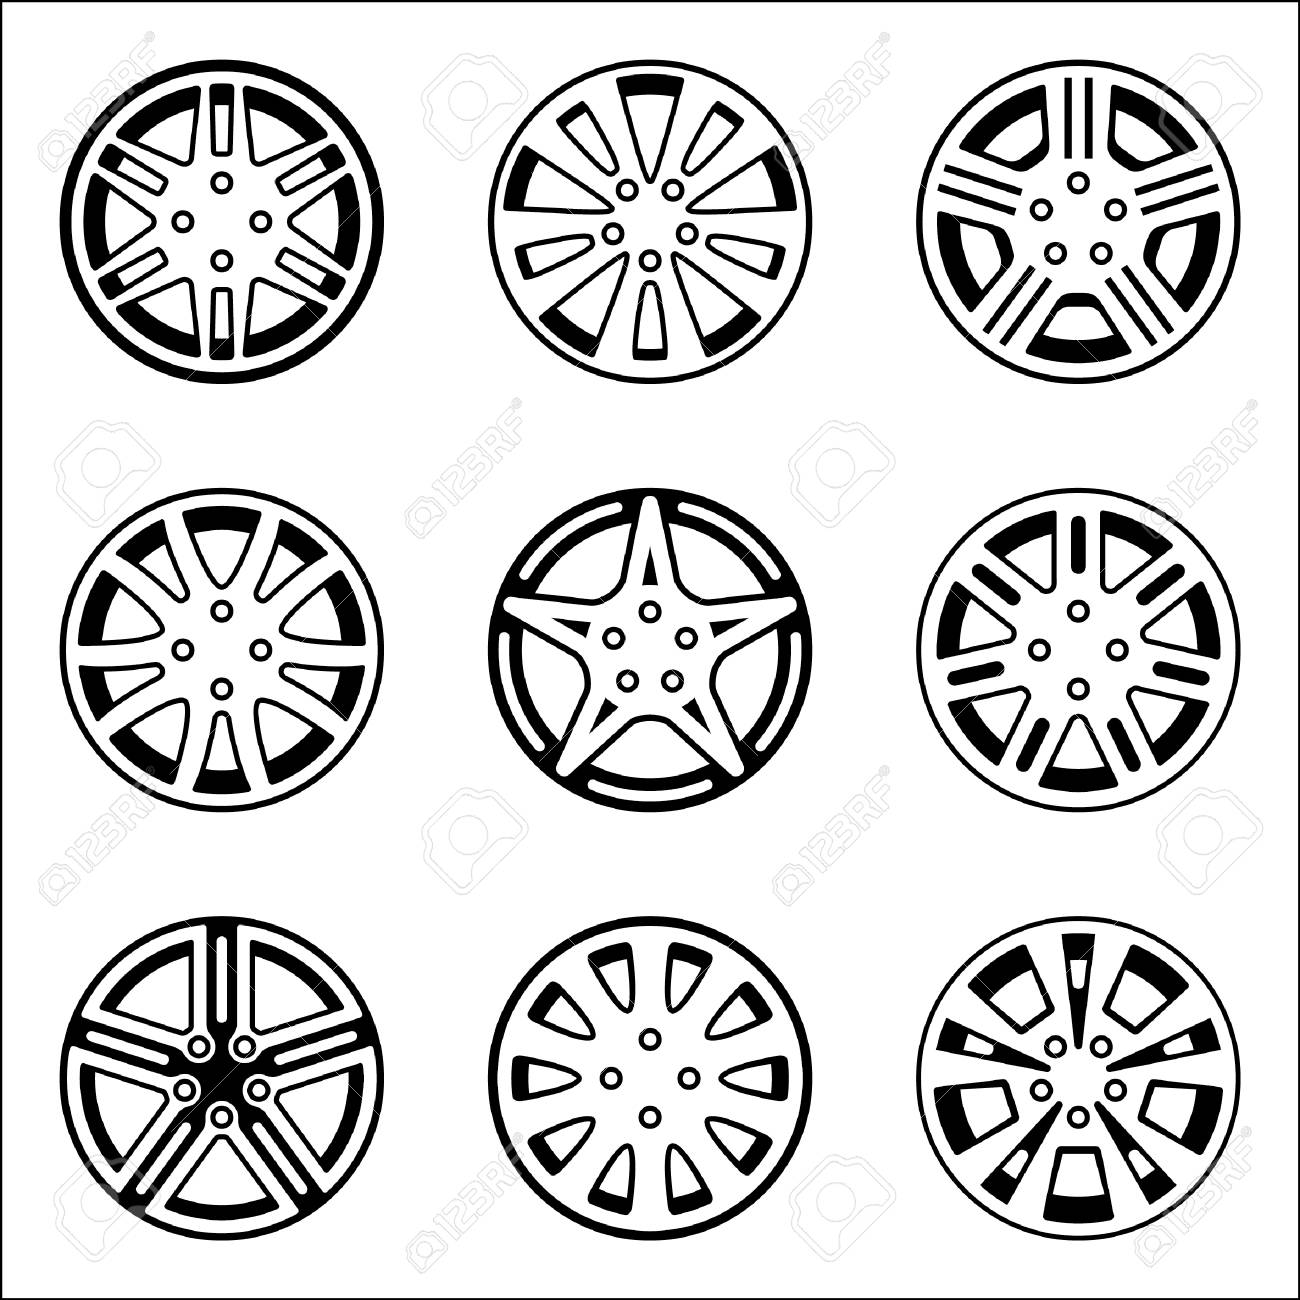 Set Of Various Types Of Car Wheel Icons Vector Illustration Royalty Free Cliparts Vectors And Stock Illustration Image 92523878